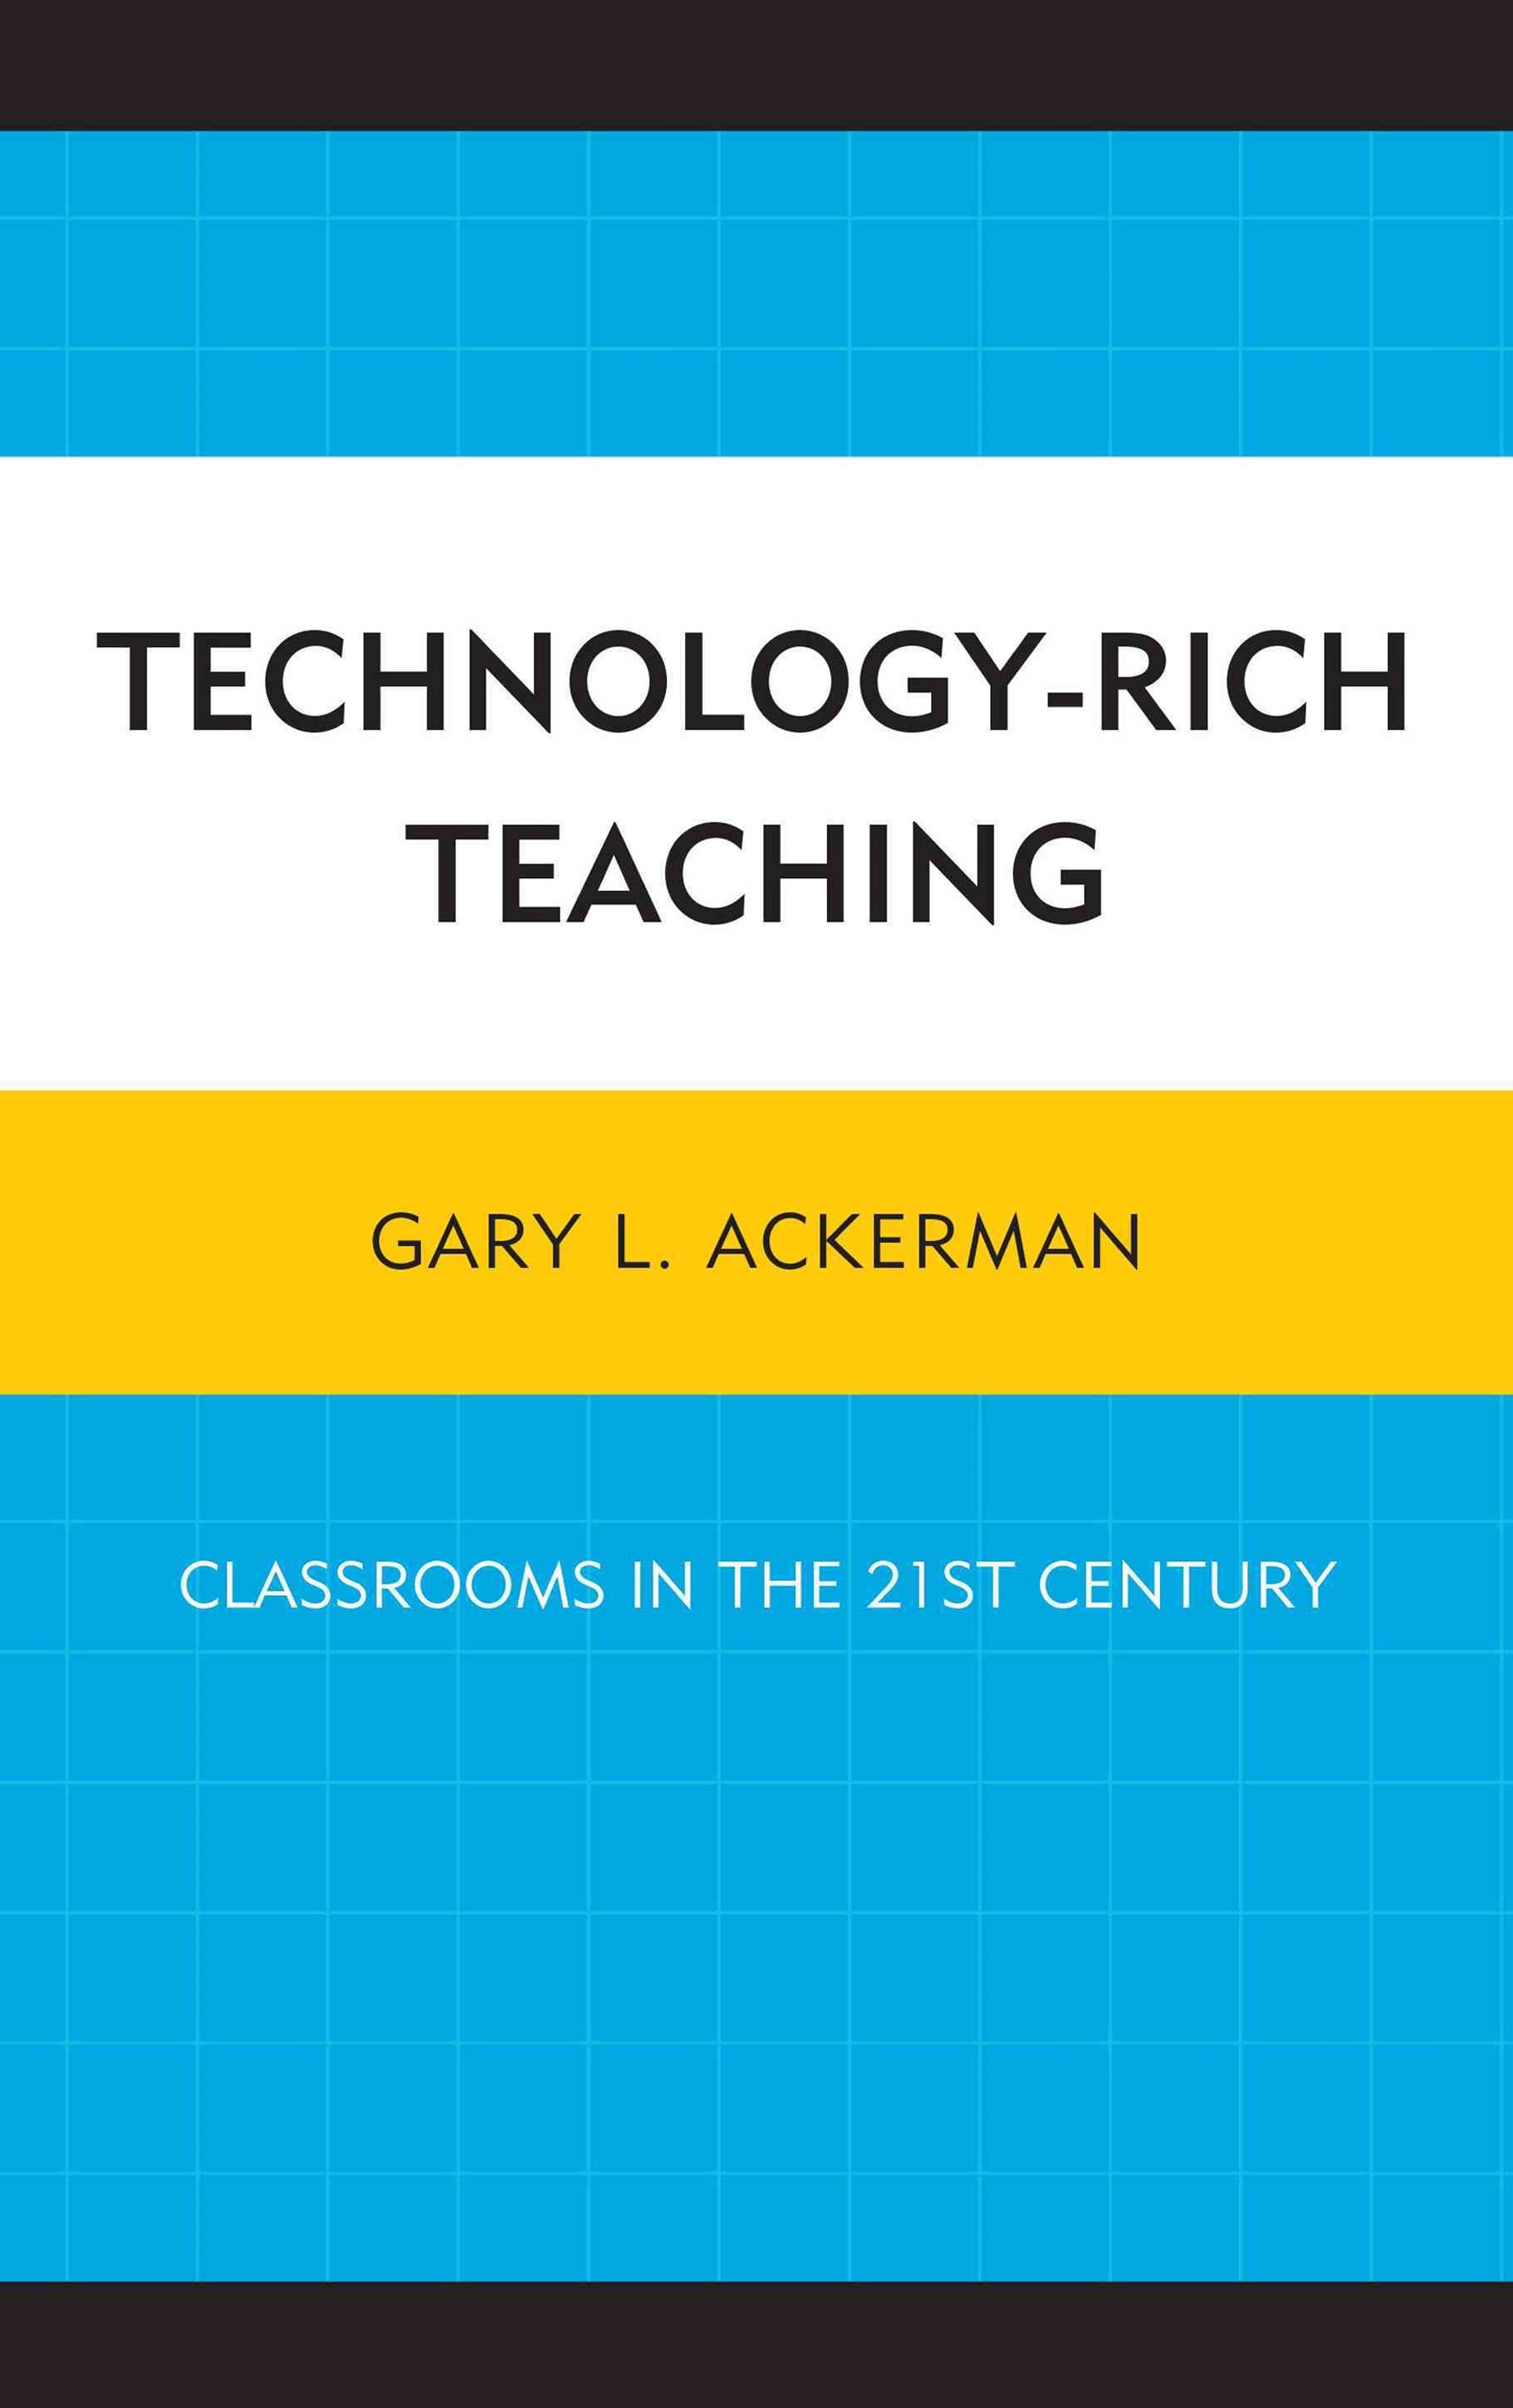 Technology-Rich Teaching